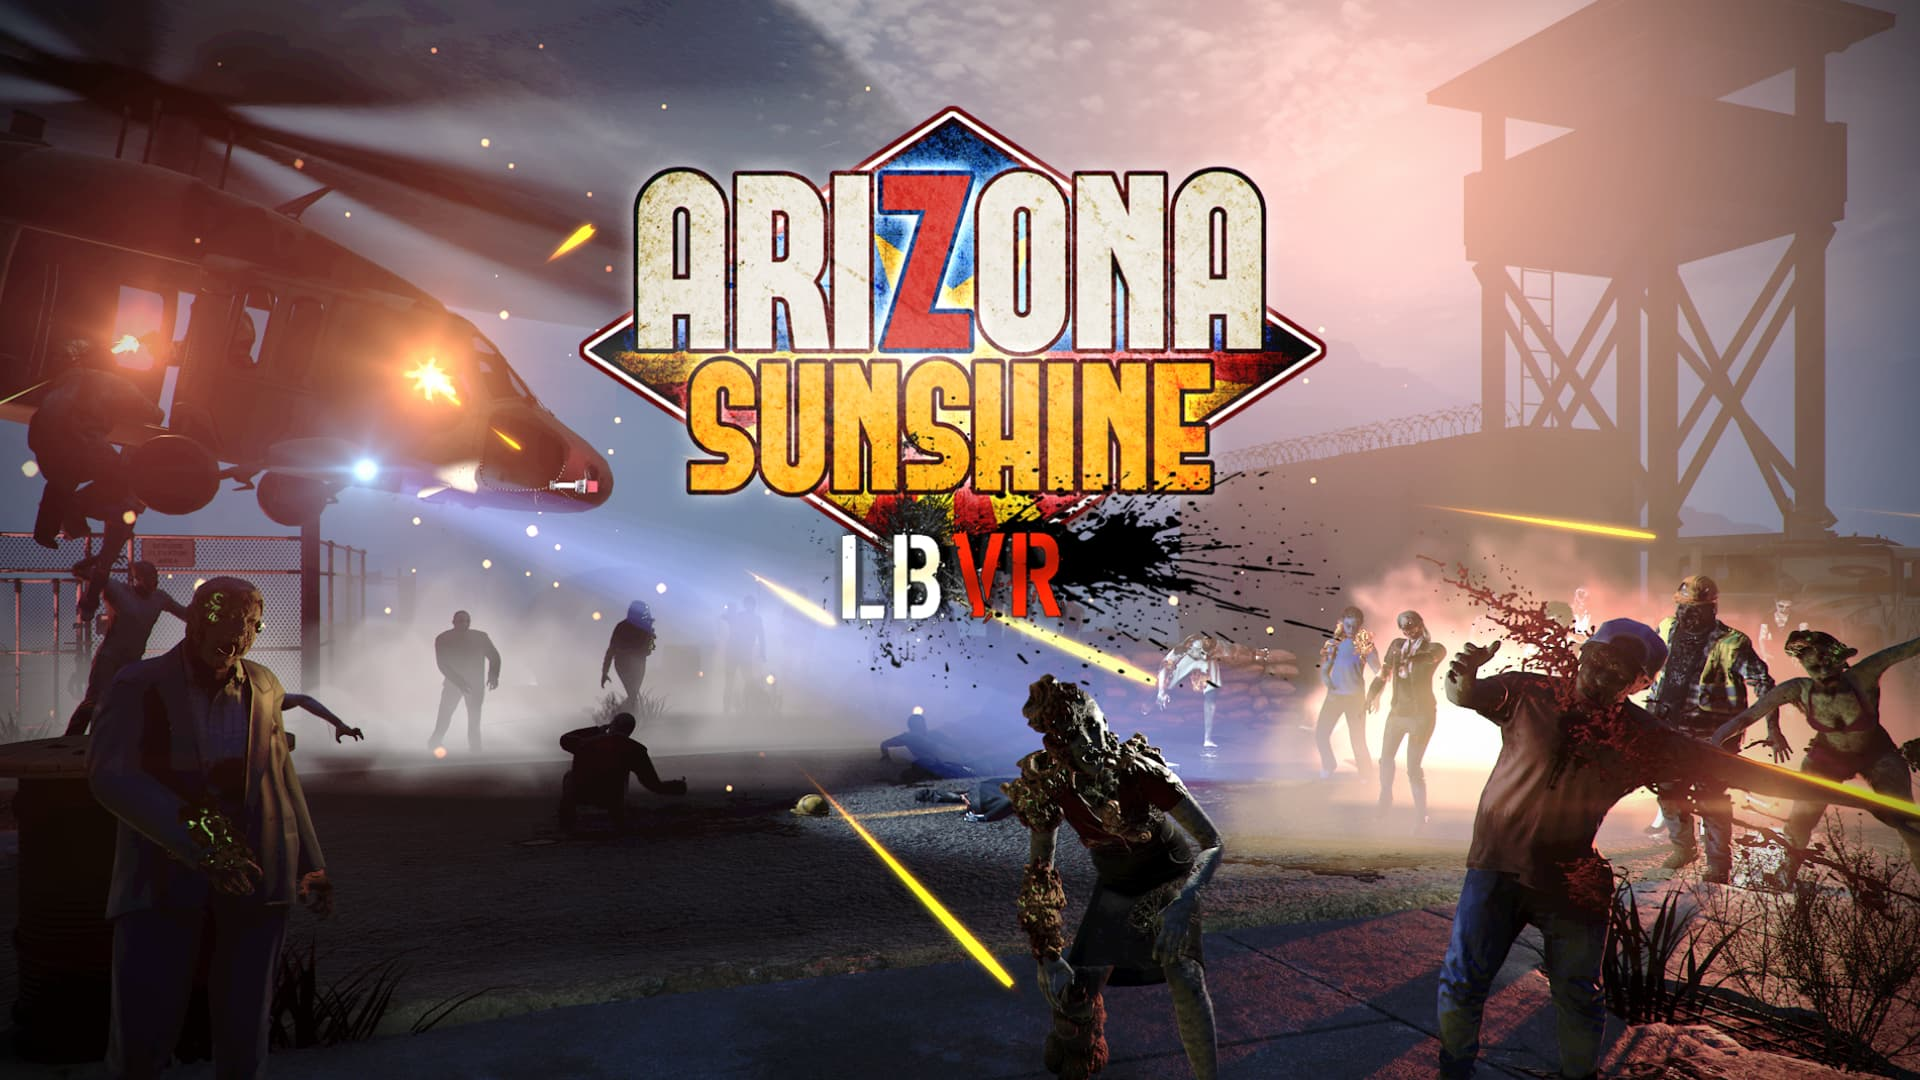 Arizona Sunshine LB